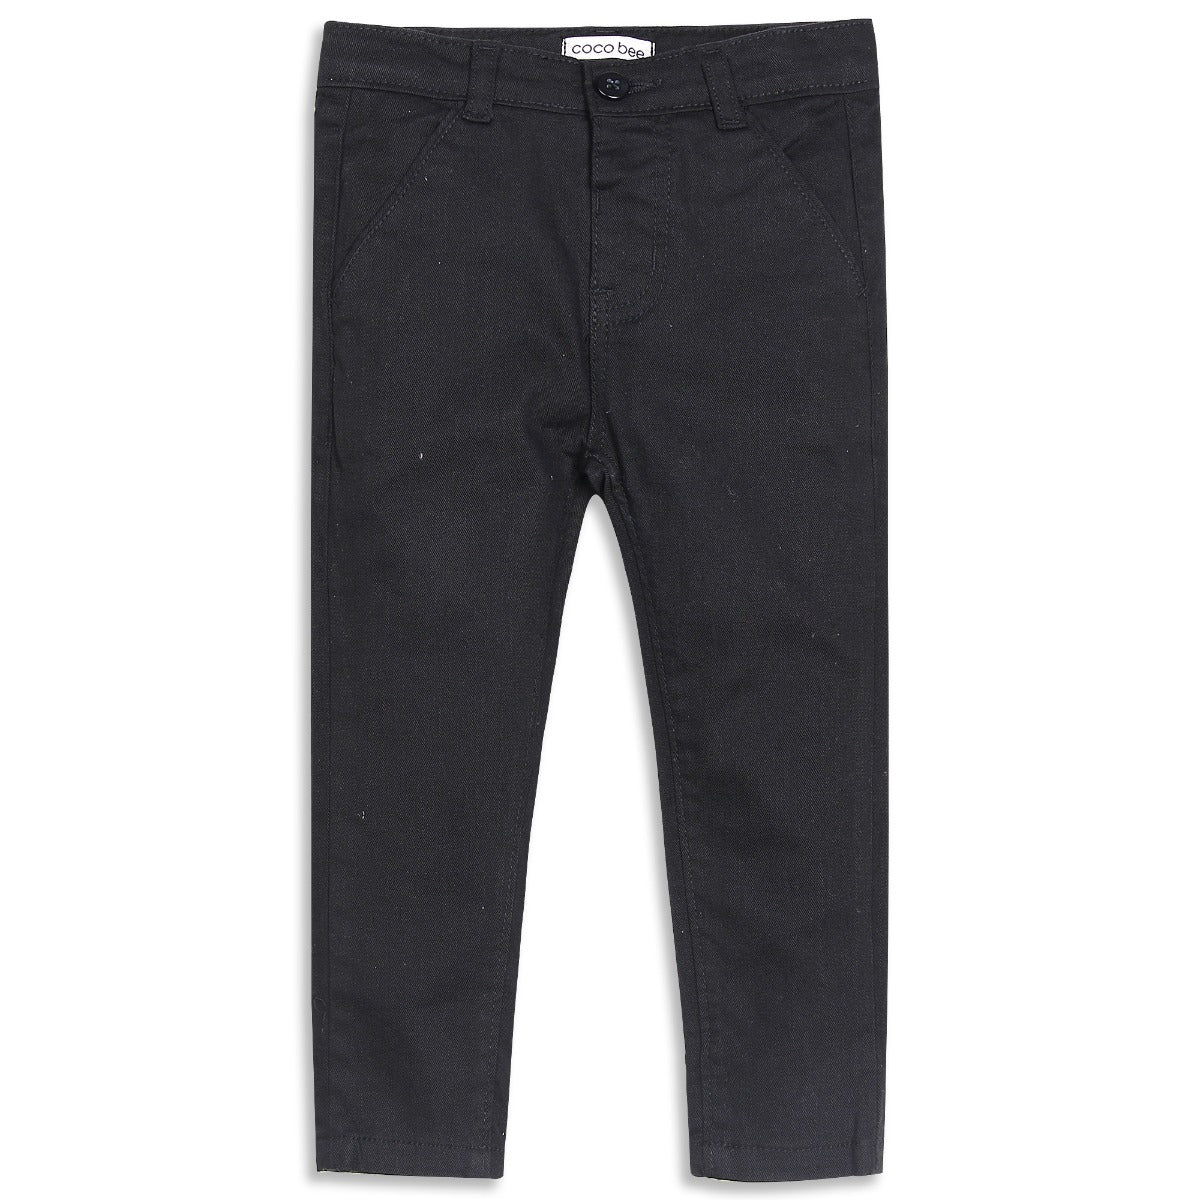 Black Chino 5 Pocket Pant